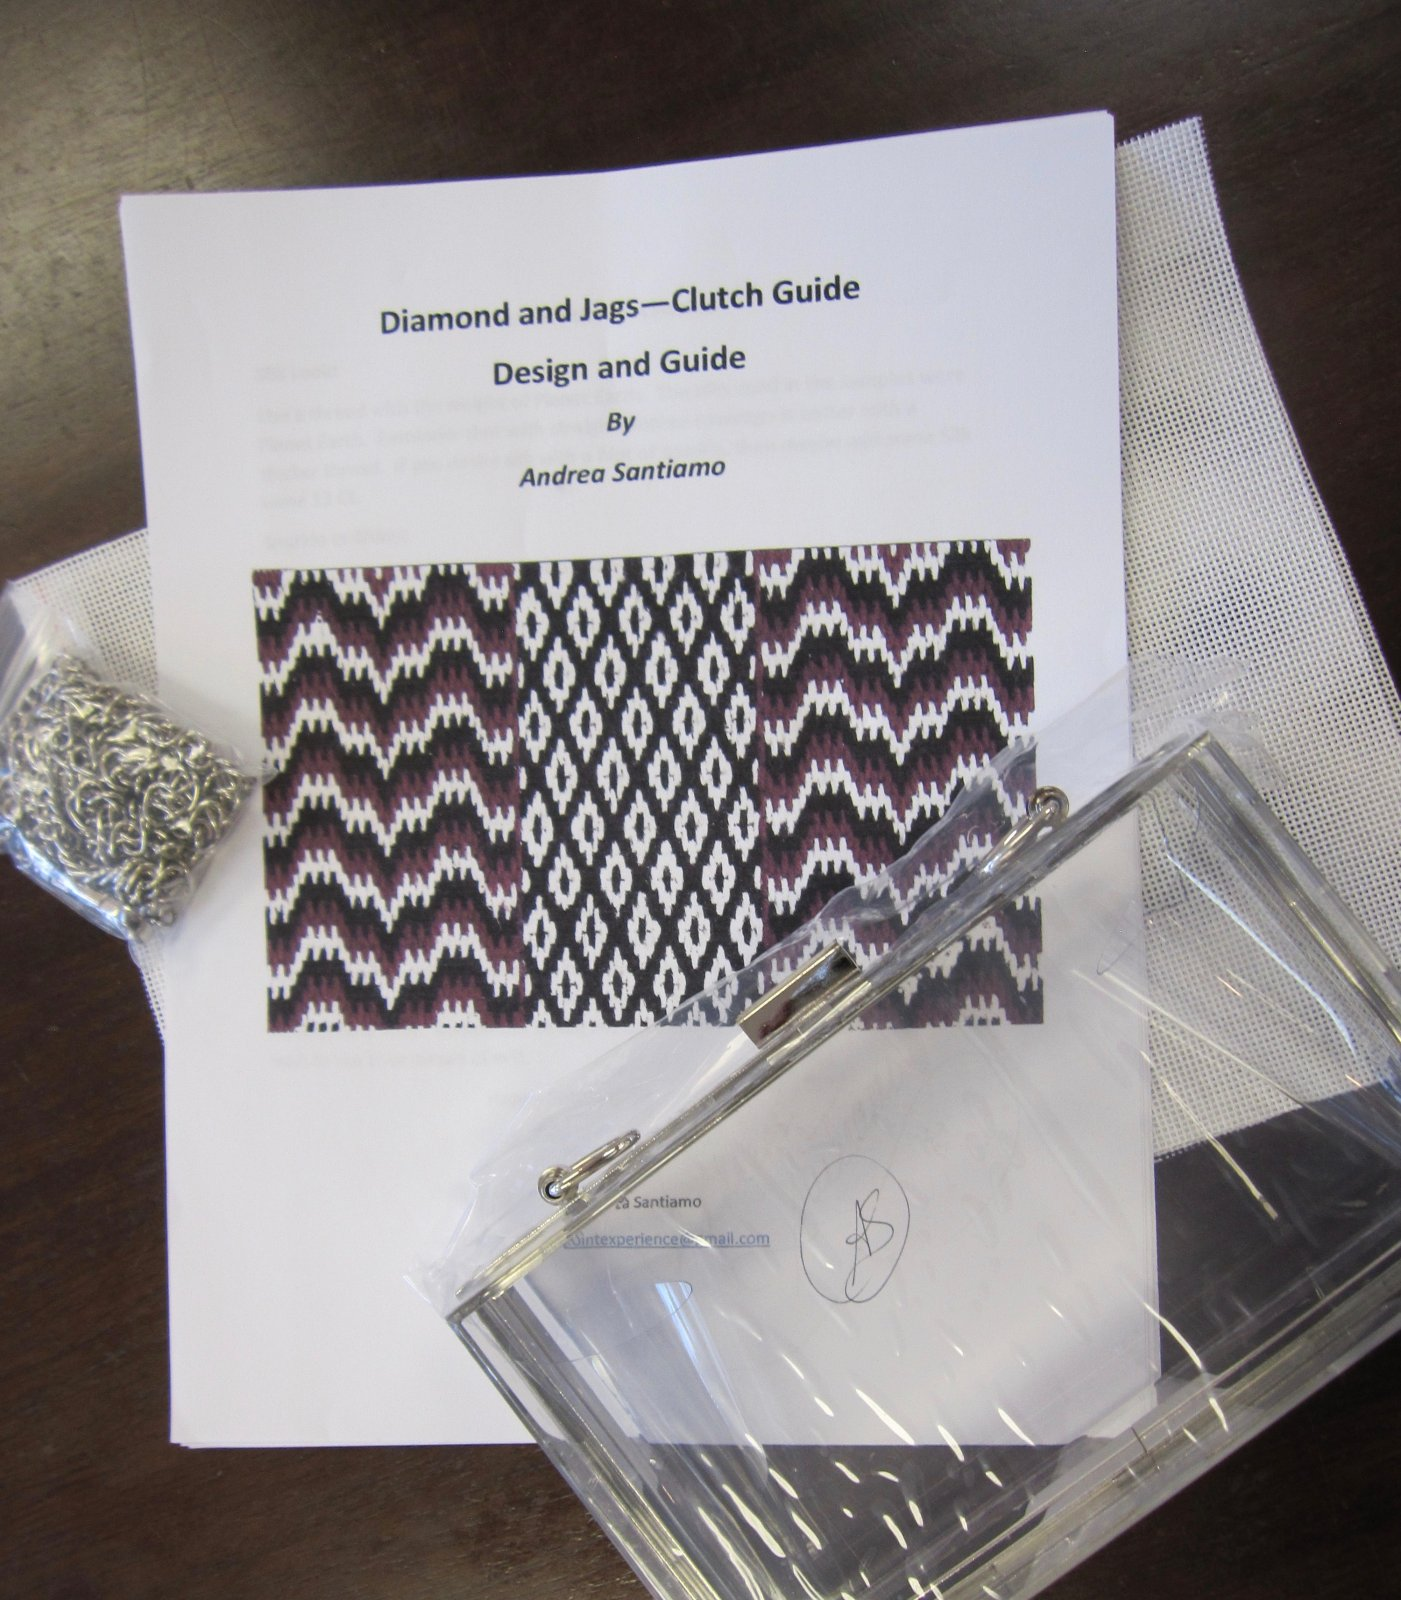 Lucite clutch, Diamond and Jags, silver trim